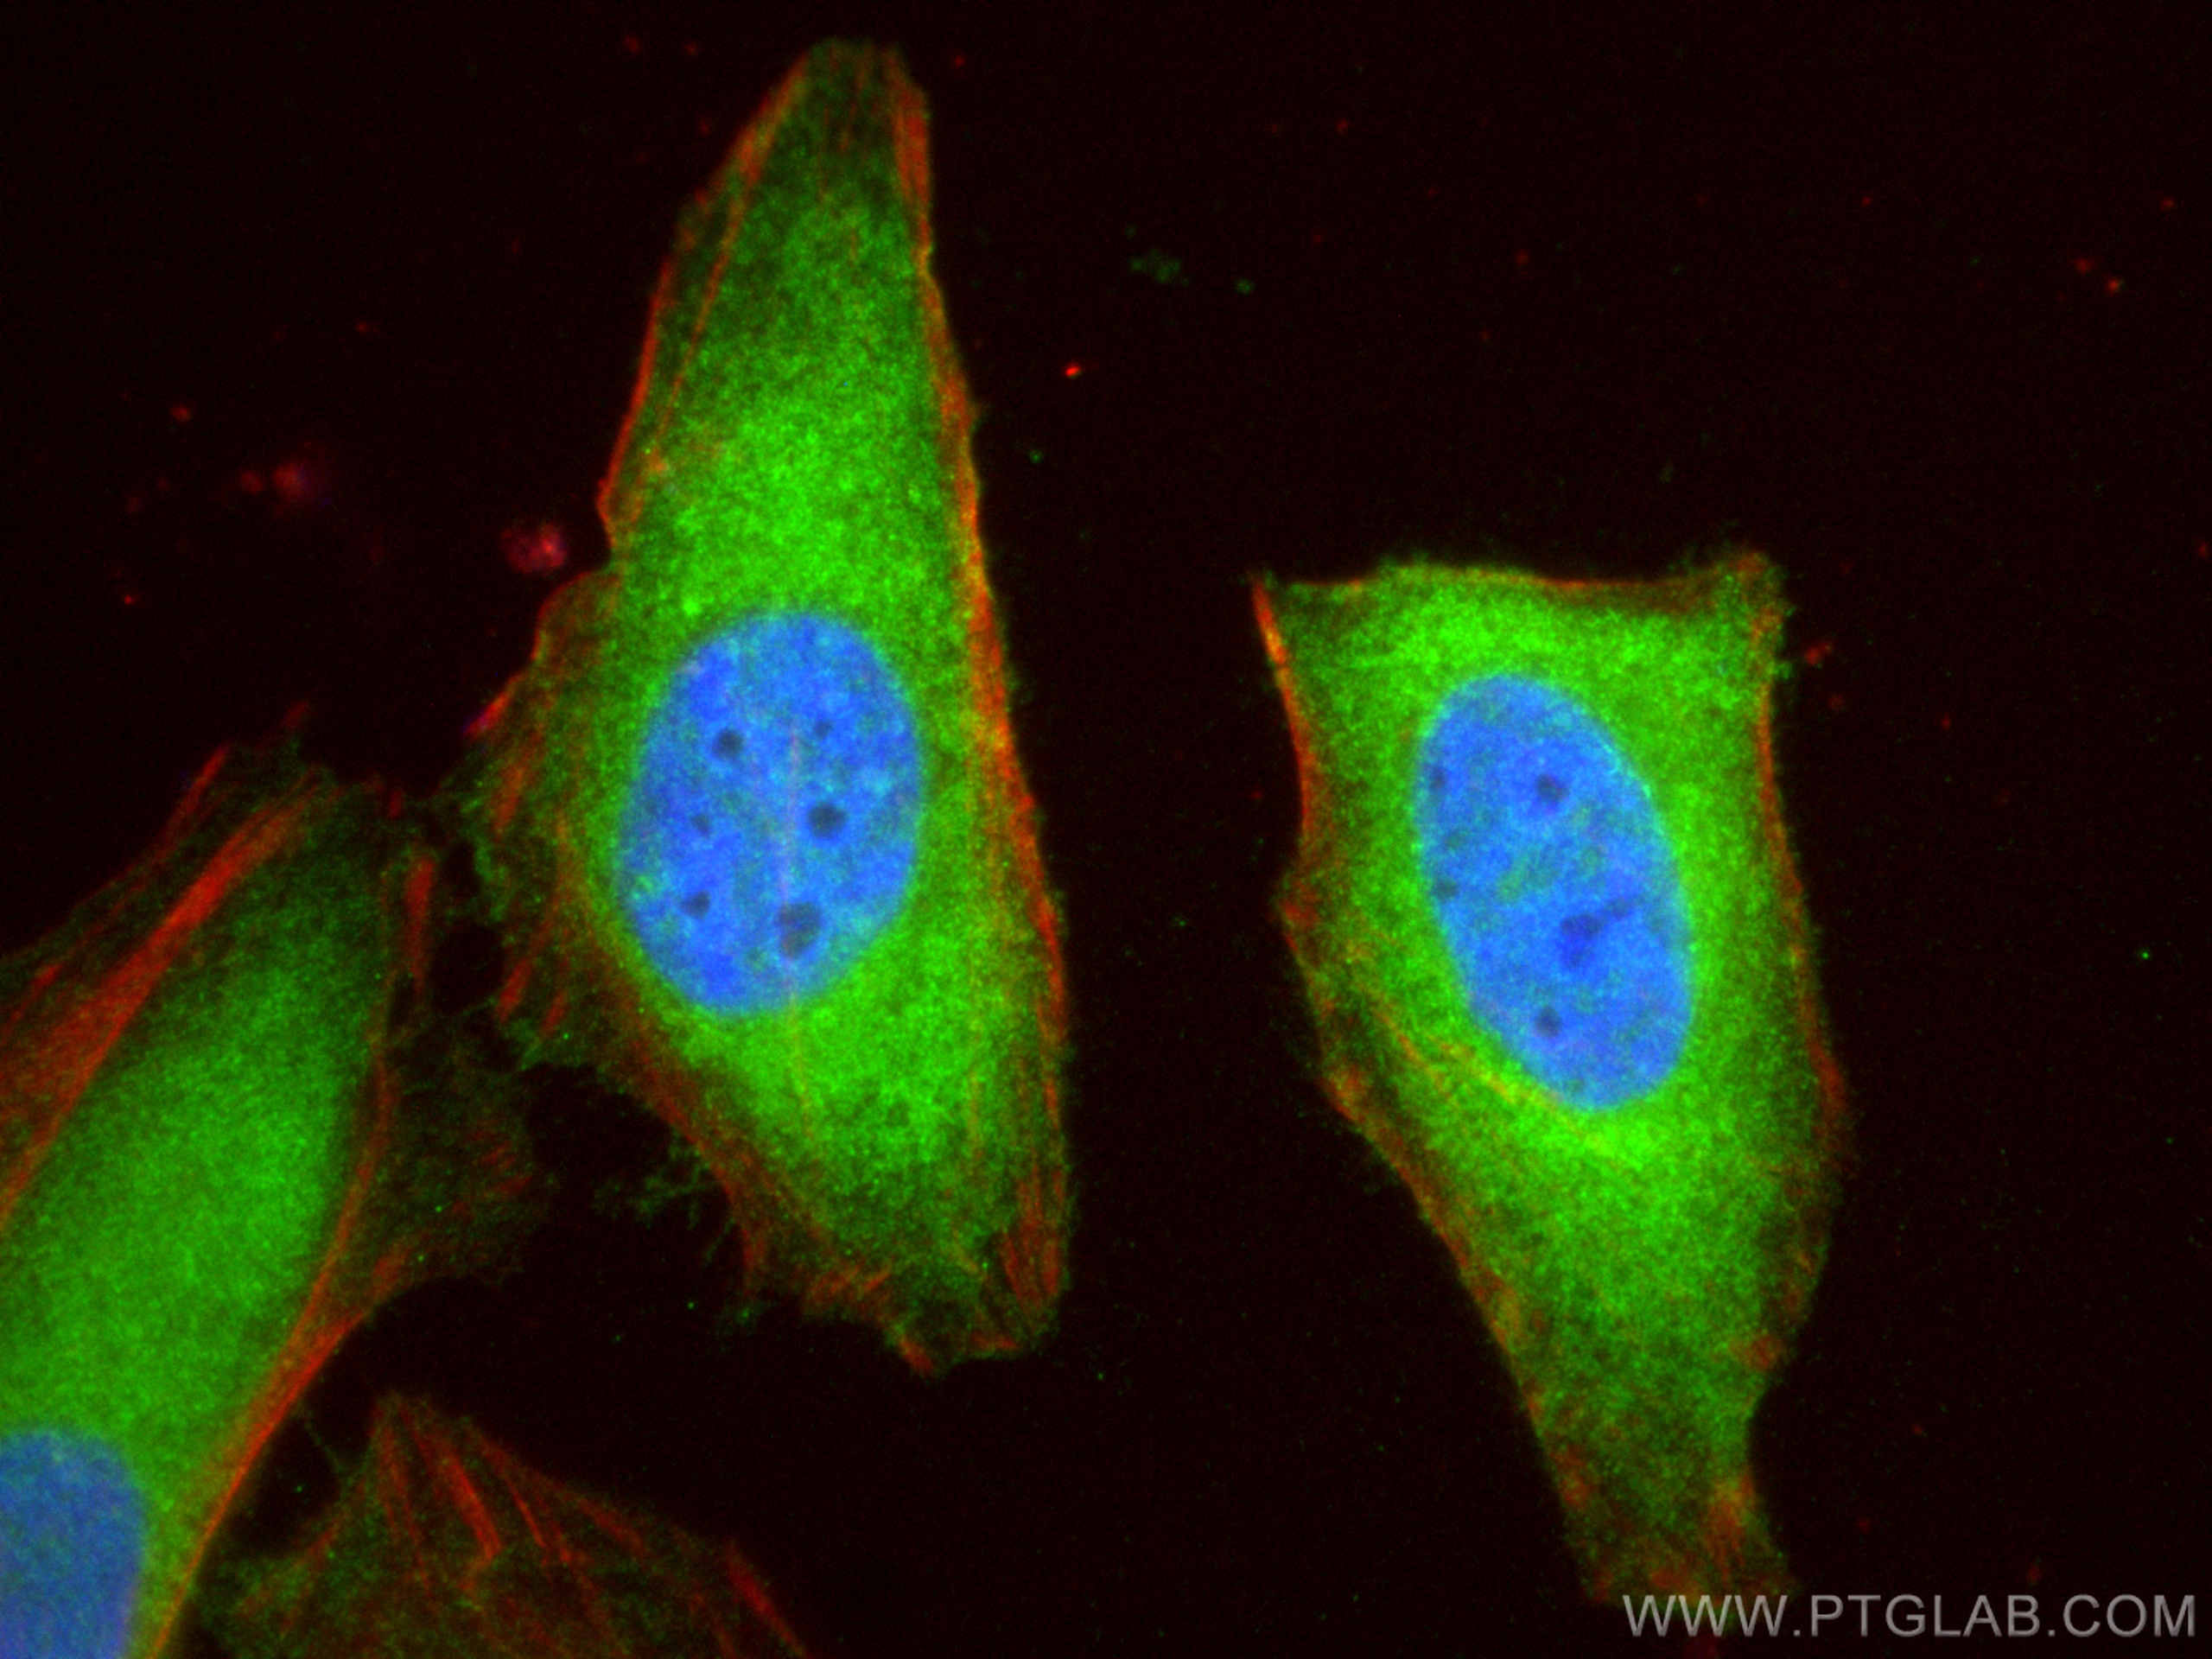 IF Staining of HeLa using 15786-1-AP